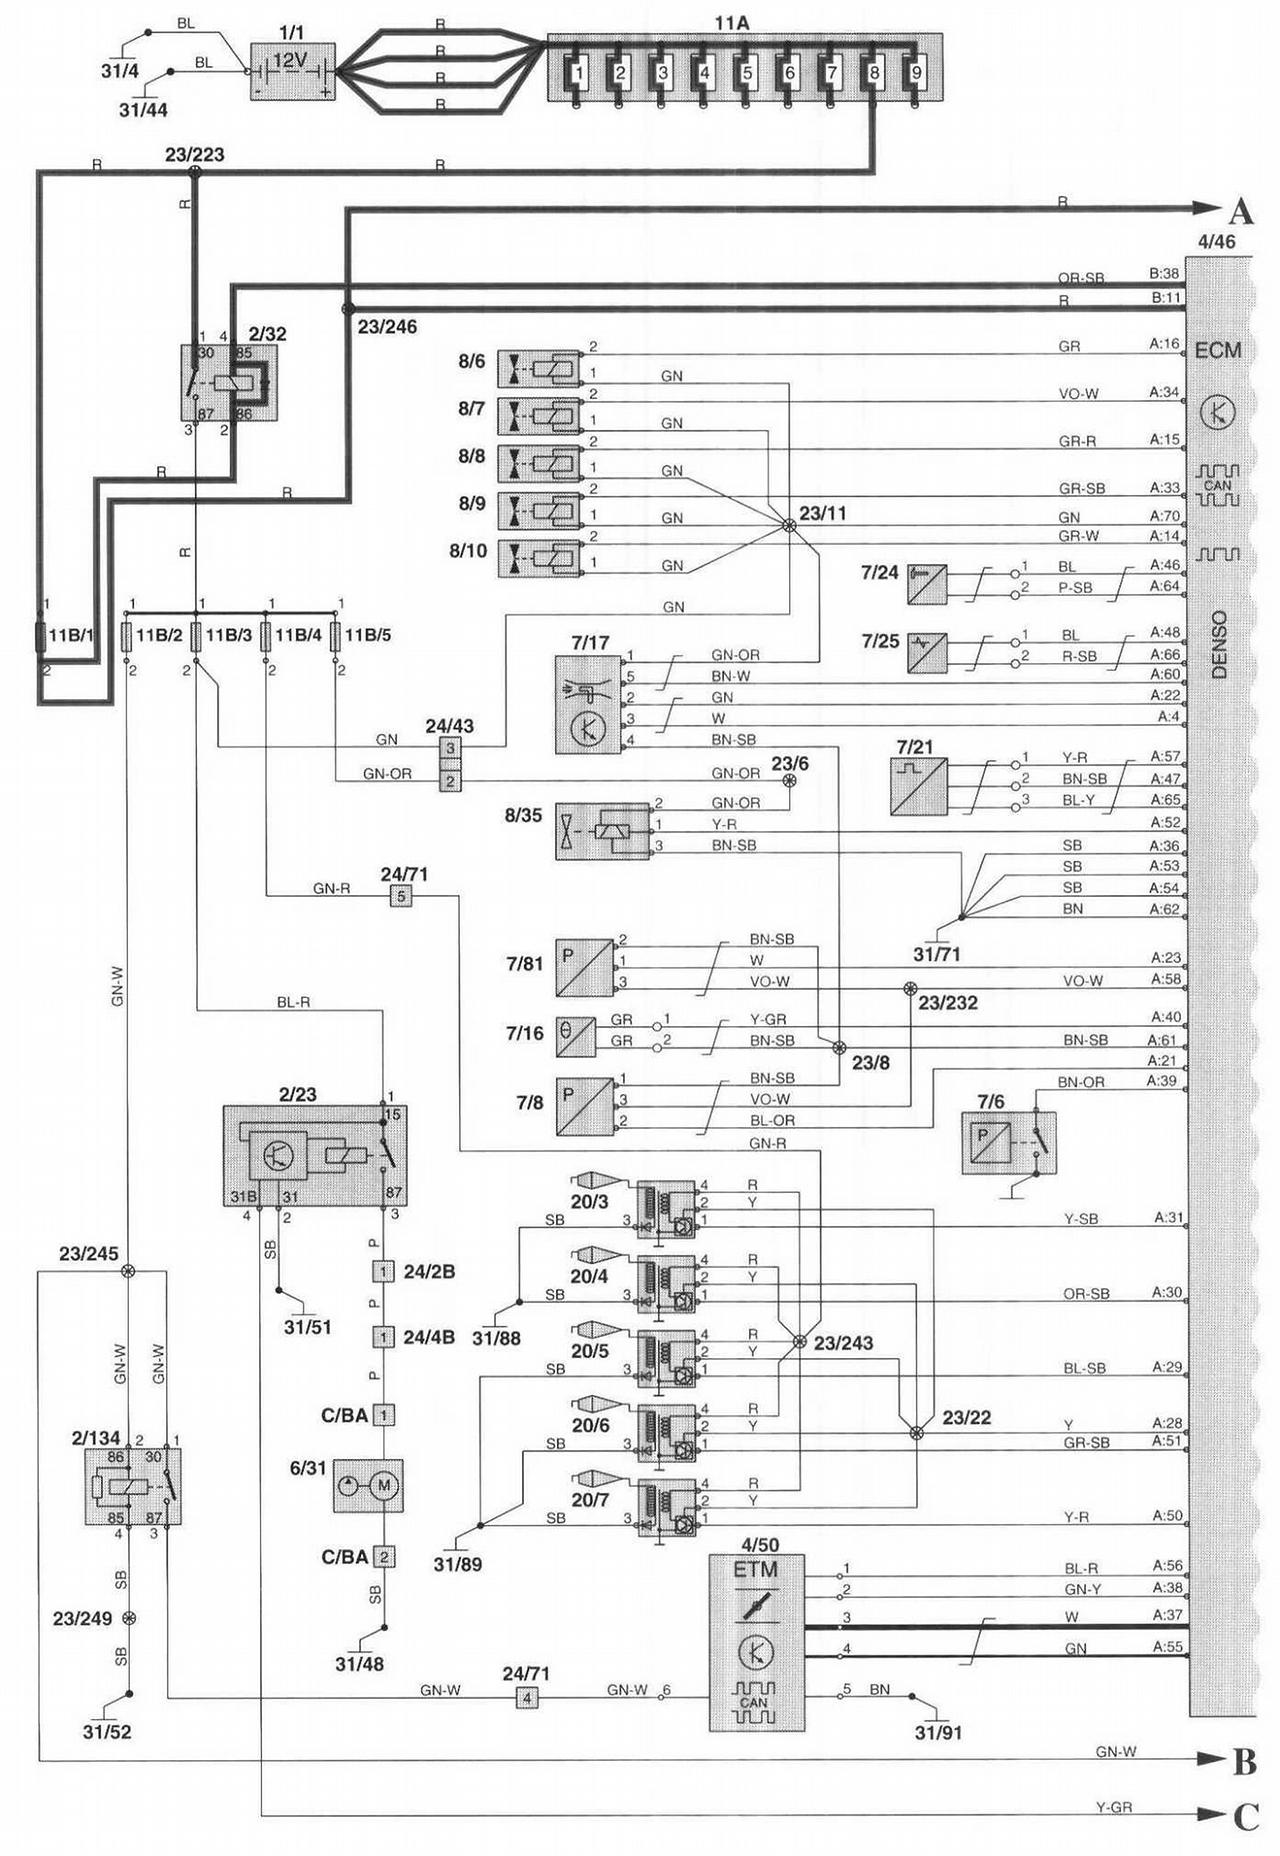 2004 volvo s80 fuse diagram lc 4123  volvo s40 boot wiring diagram download diagram  lc 4123  volvo s40 boot wiring diagram